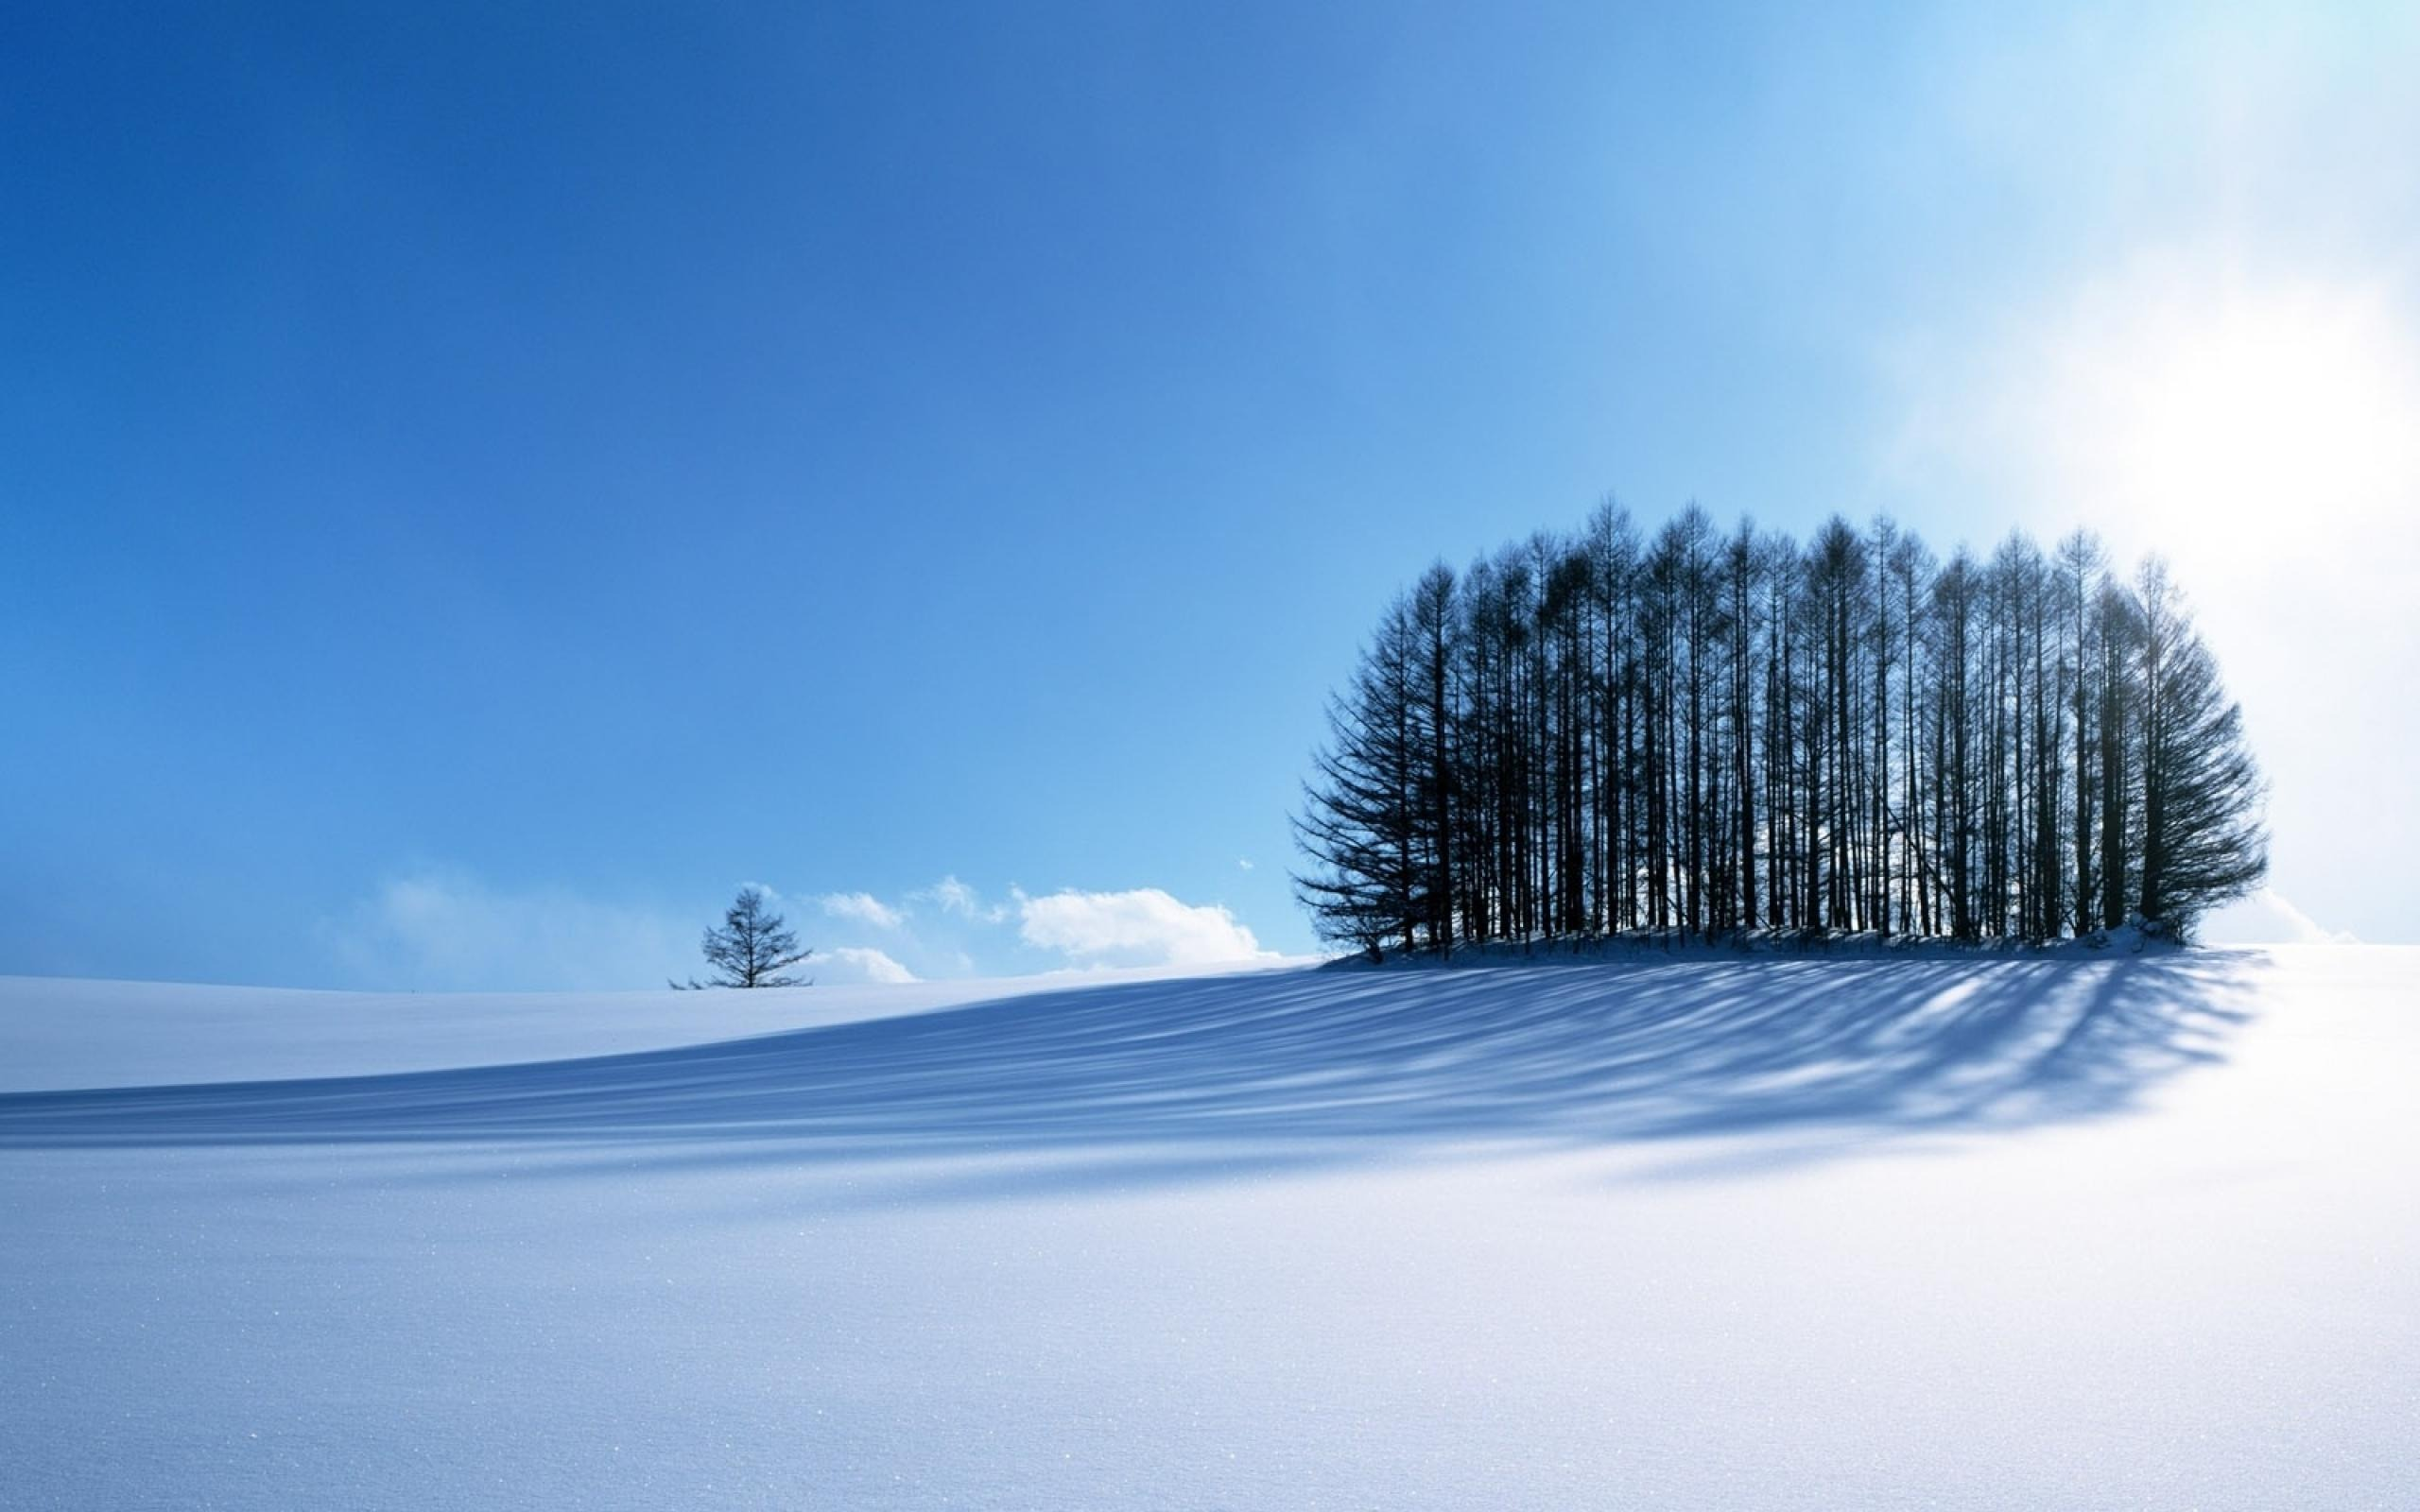 nature landscapes winter trees snow